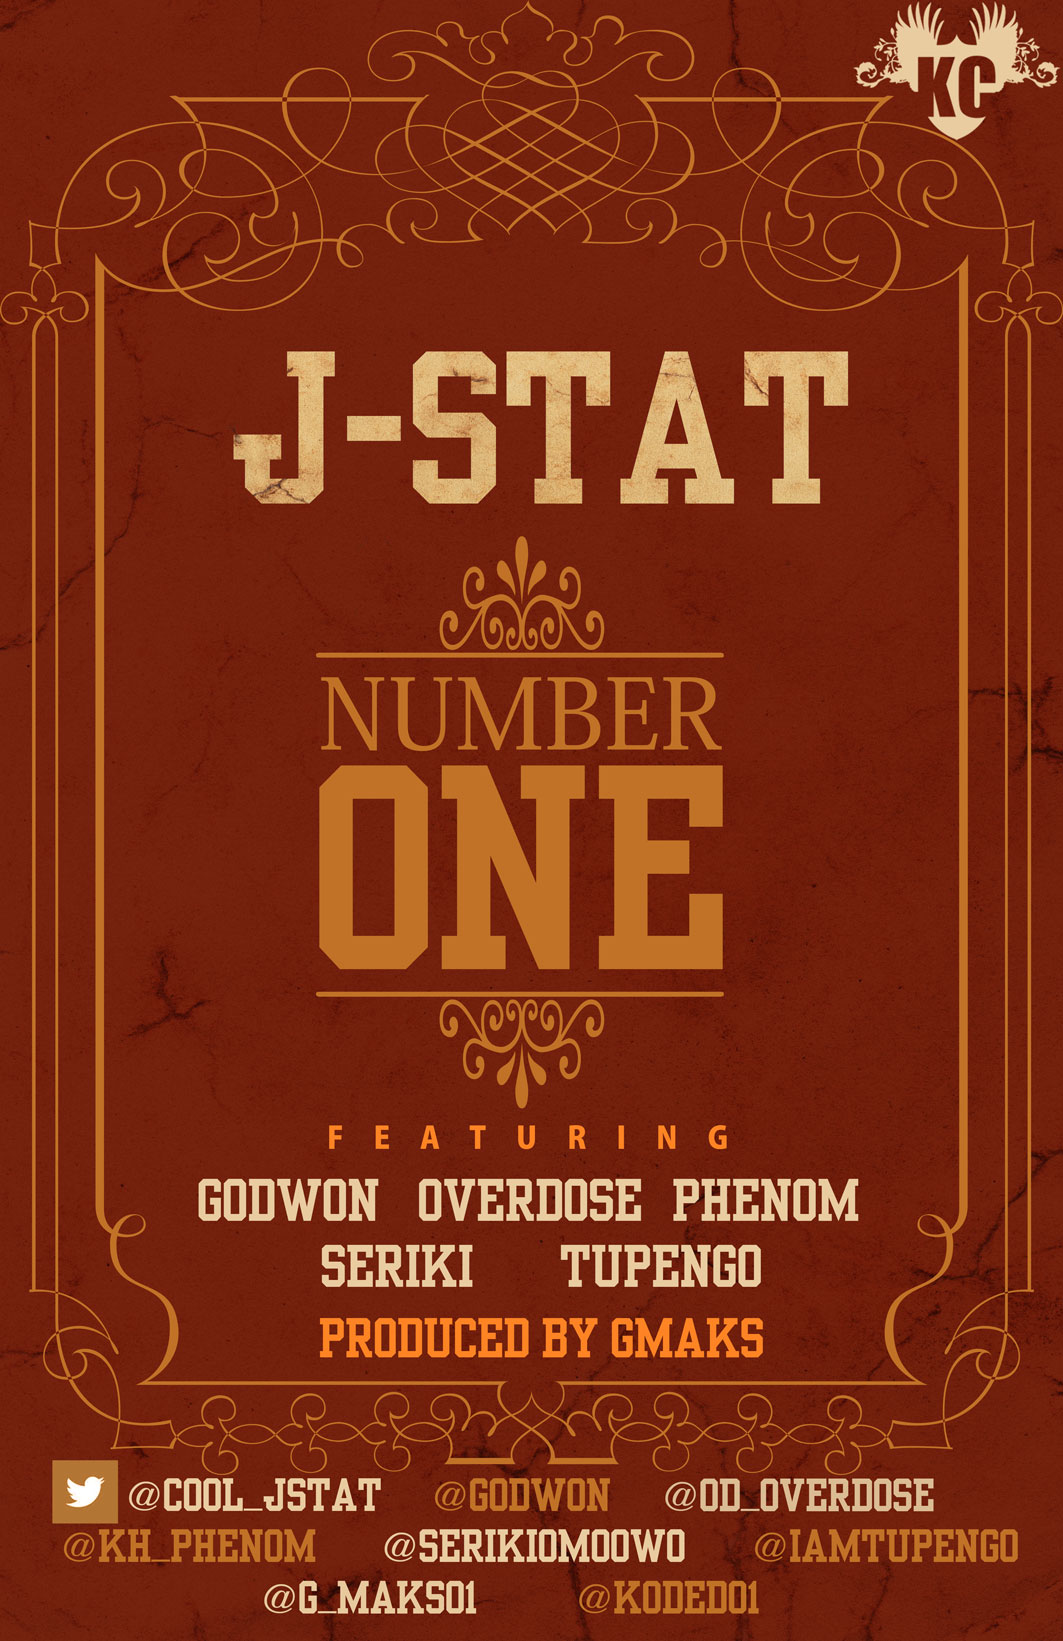 J-Stat ft. OverDose, Godwon, Seriki, Tupengo 'n' Phenom - NUMBER ONE [prod. by G-Maks] Artwork | AceWorldTeam.com